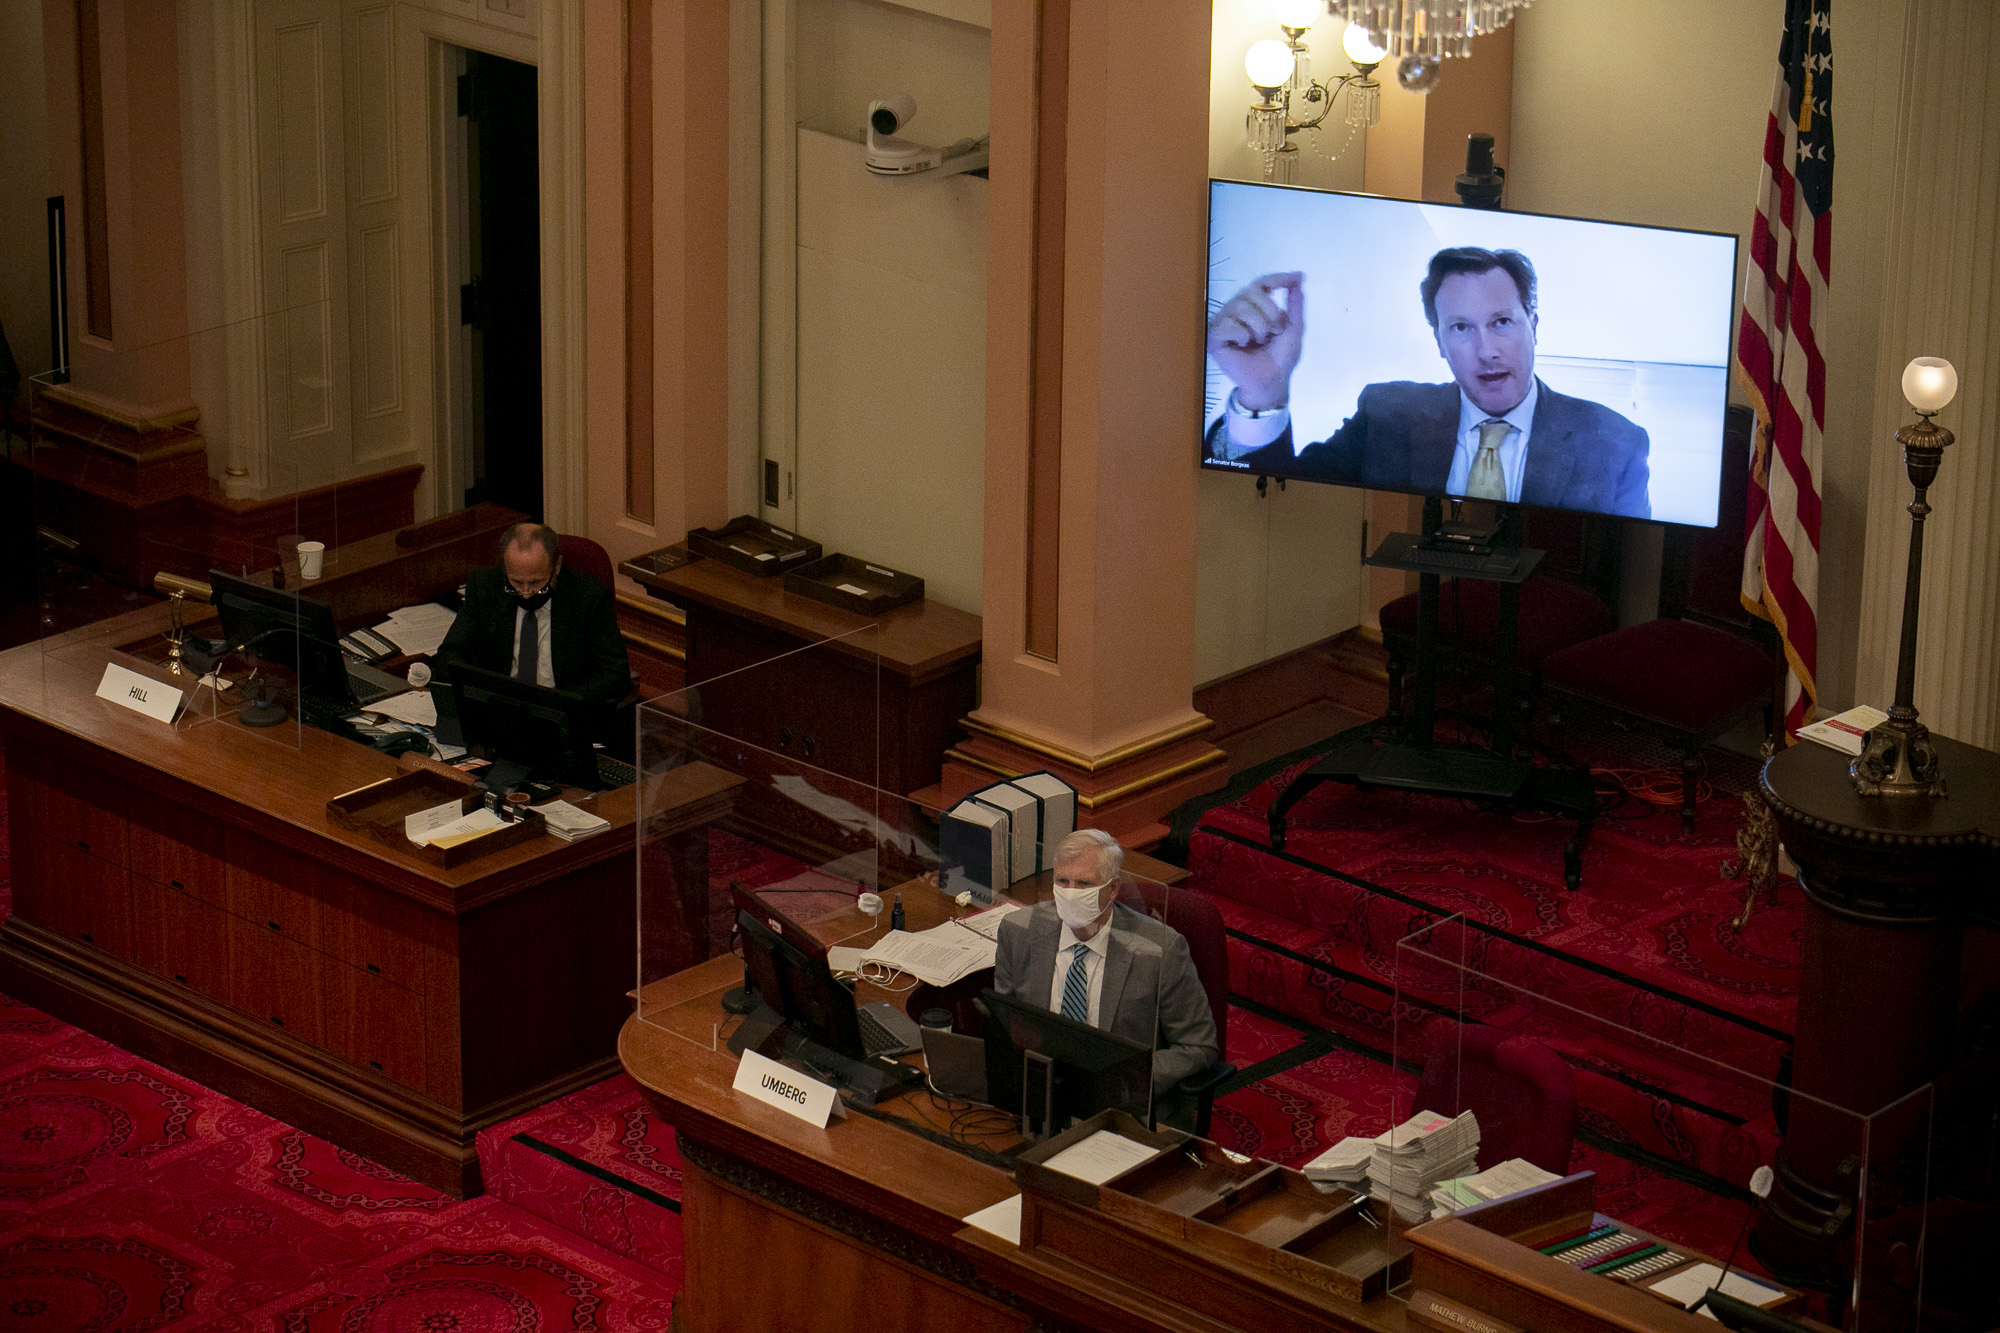 Sen. Andreas Borgeas speaks remotely about tattoo artists from a monitor during the debate on contract worker exemptions on Aug. 31, 2020. Senate republicans were required to vote remotely following a positive COVID-19 test last week among the senate GOP caucus. Photo by Anne Wernikoff for CalMatters